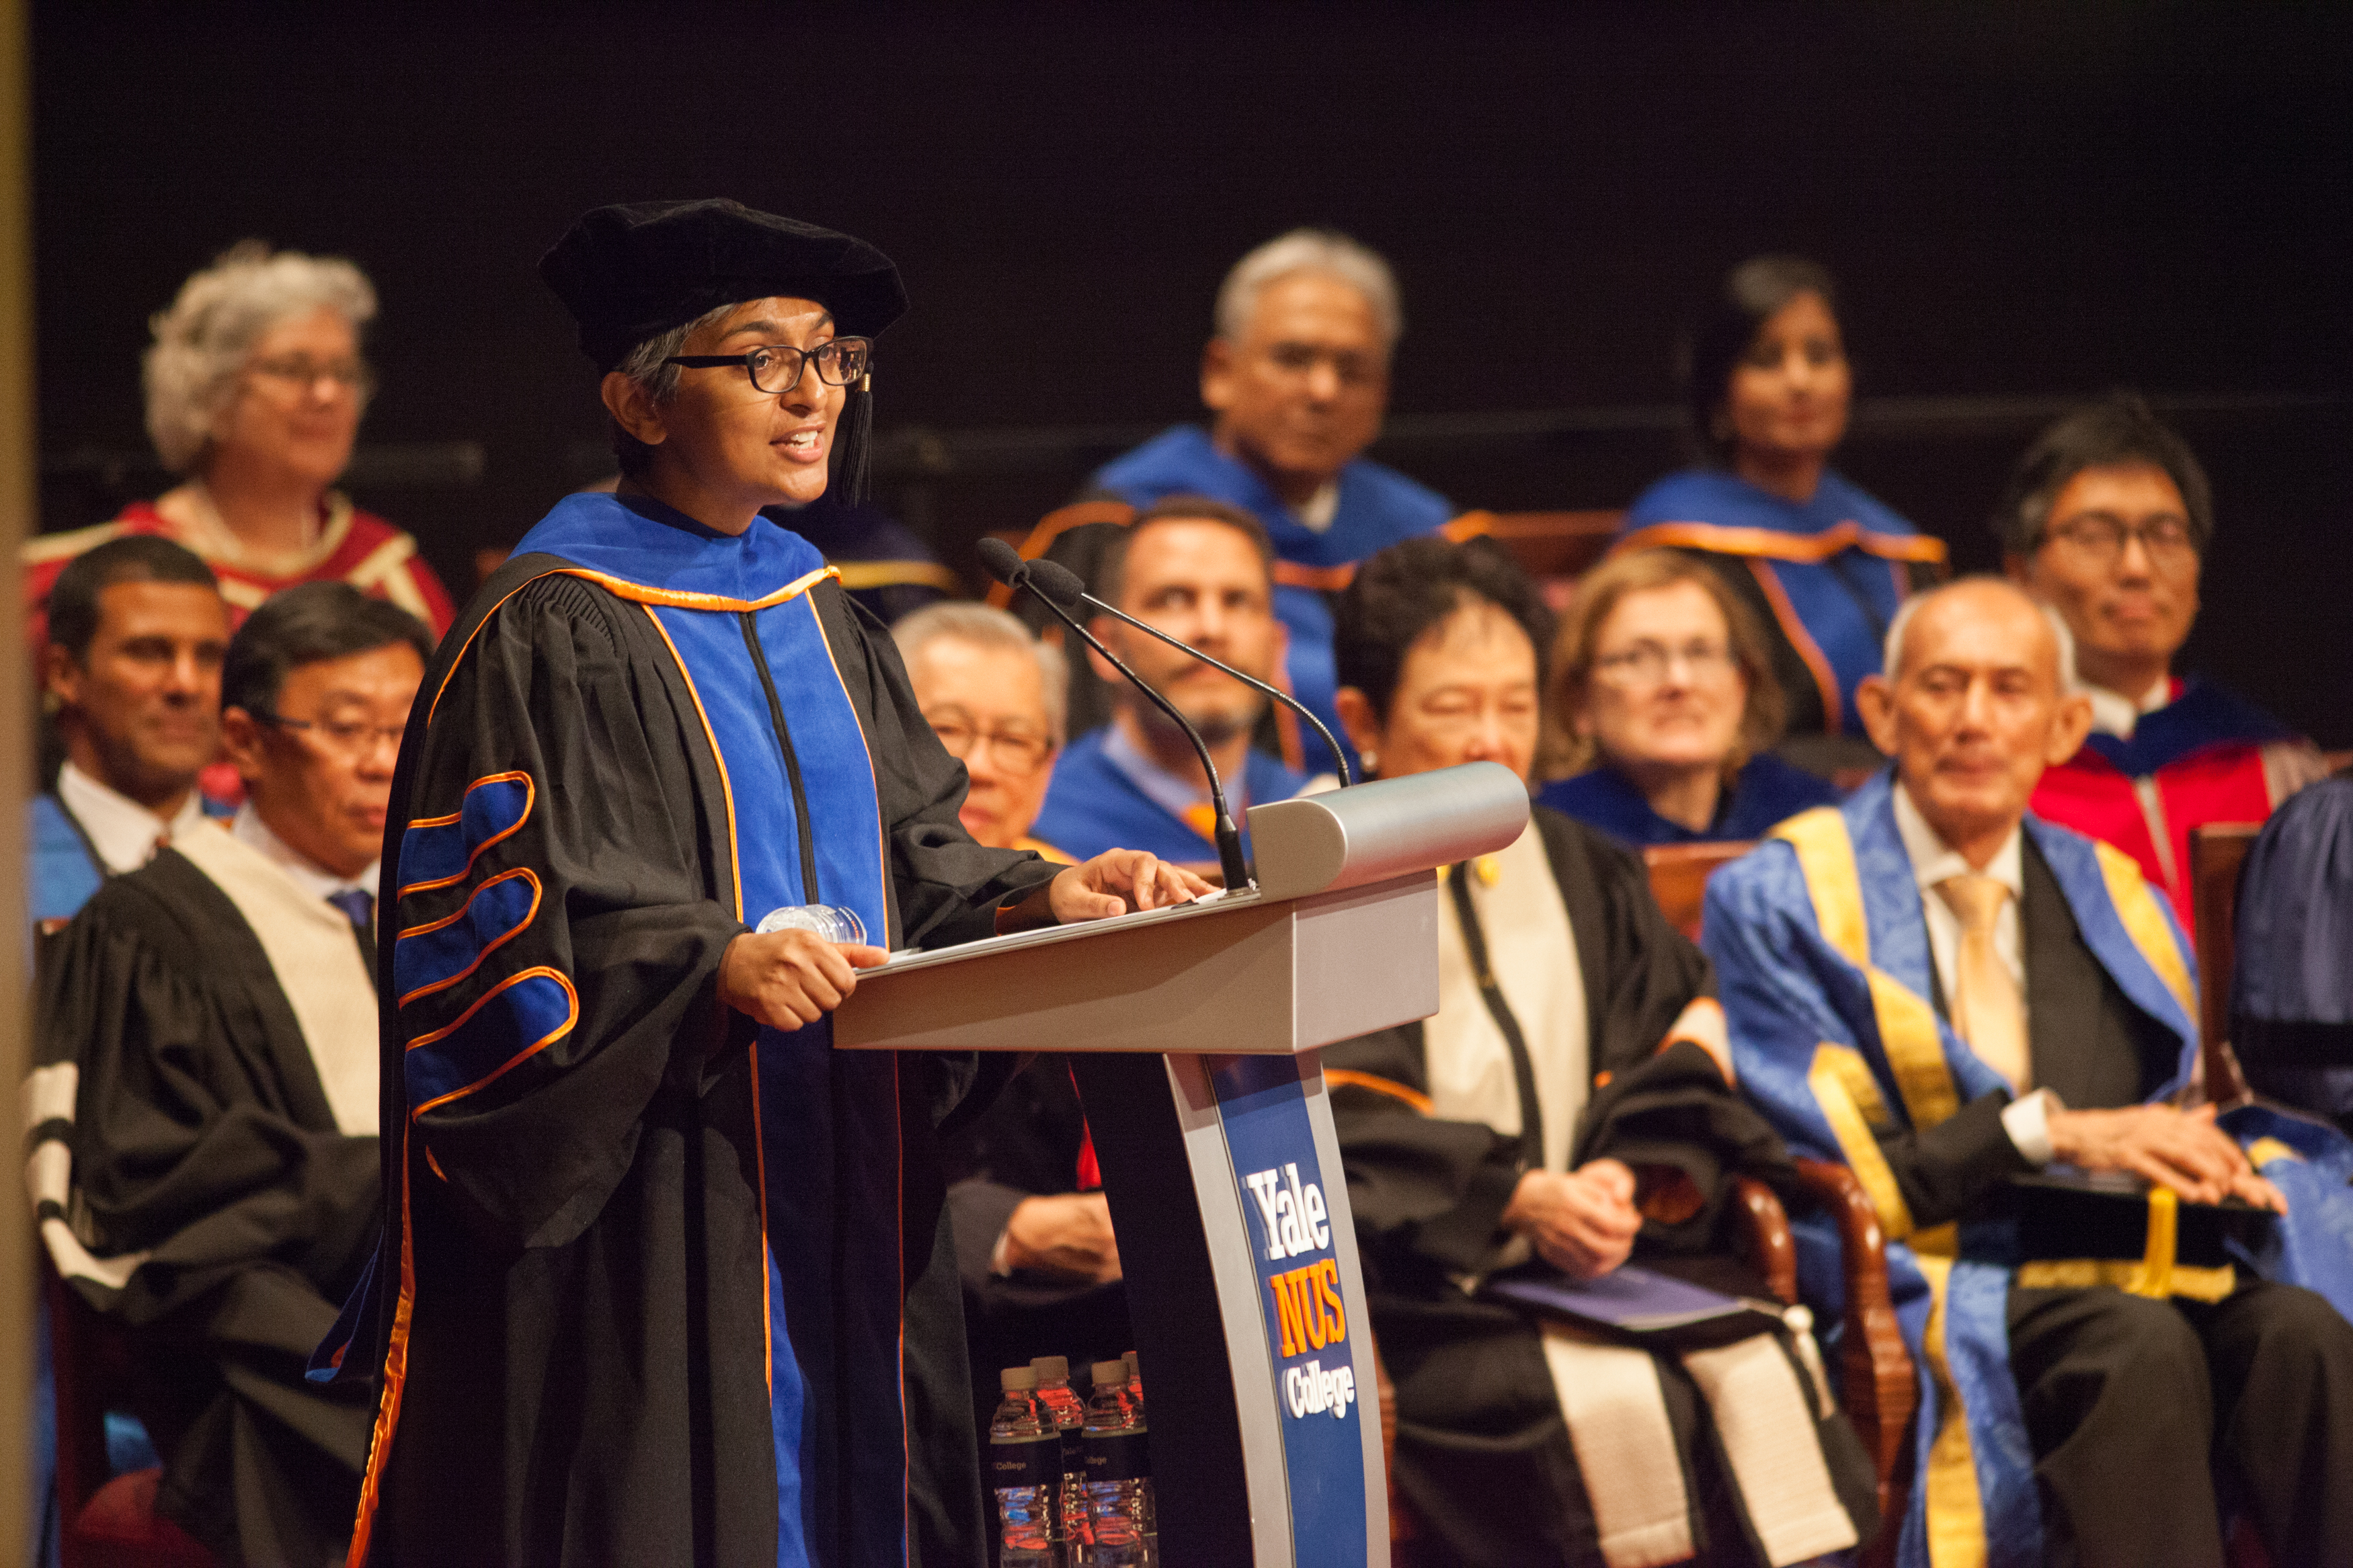 Assistant Professor Anju Mary Paul was selected by the class of 2017 as the faculty speaker.